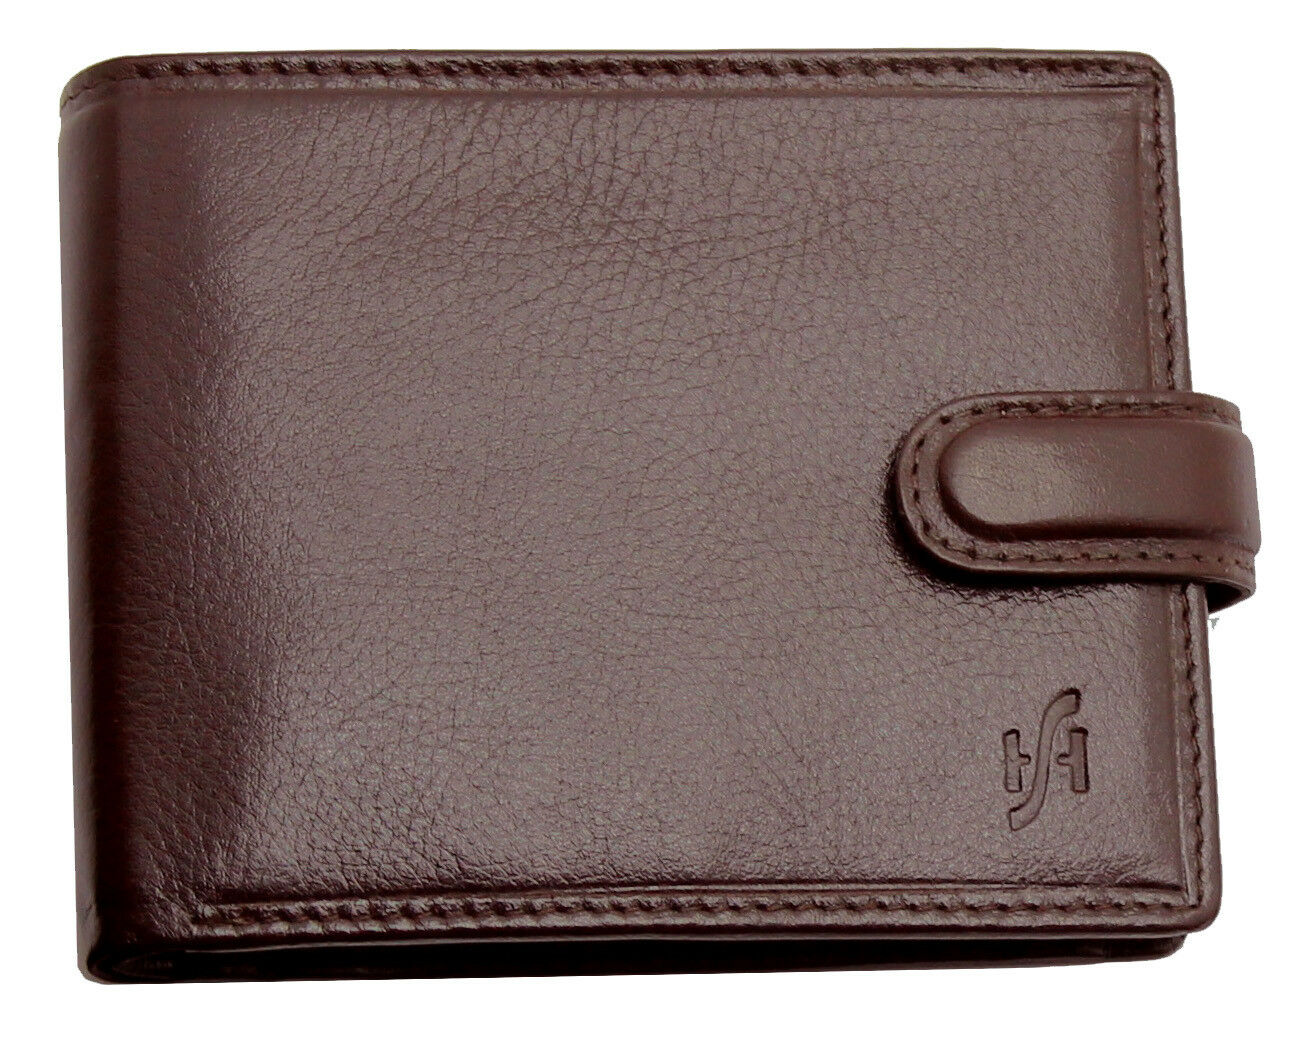 Mens RFID Blocking VT Leather Trifold Wallet Brown